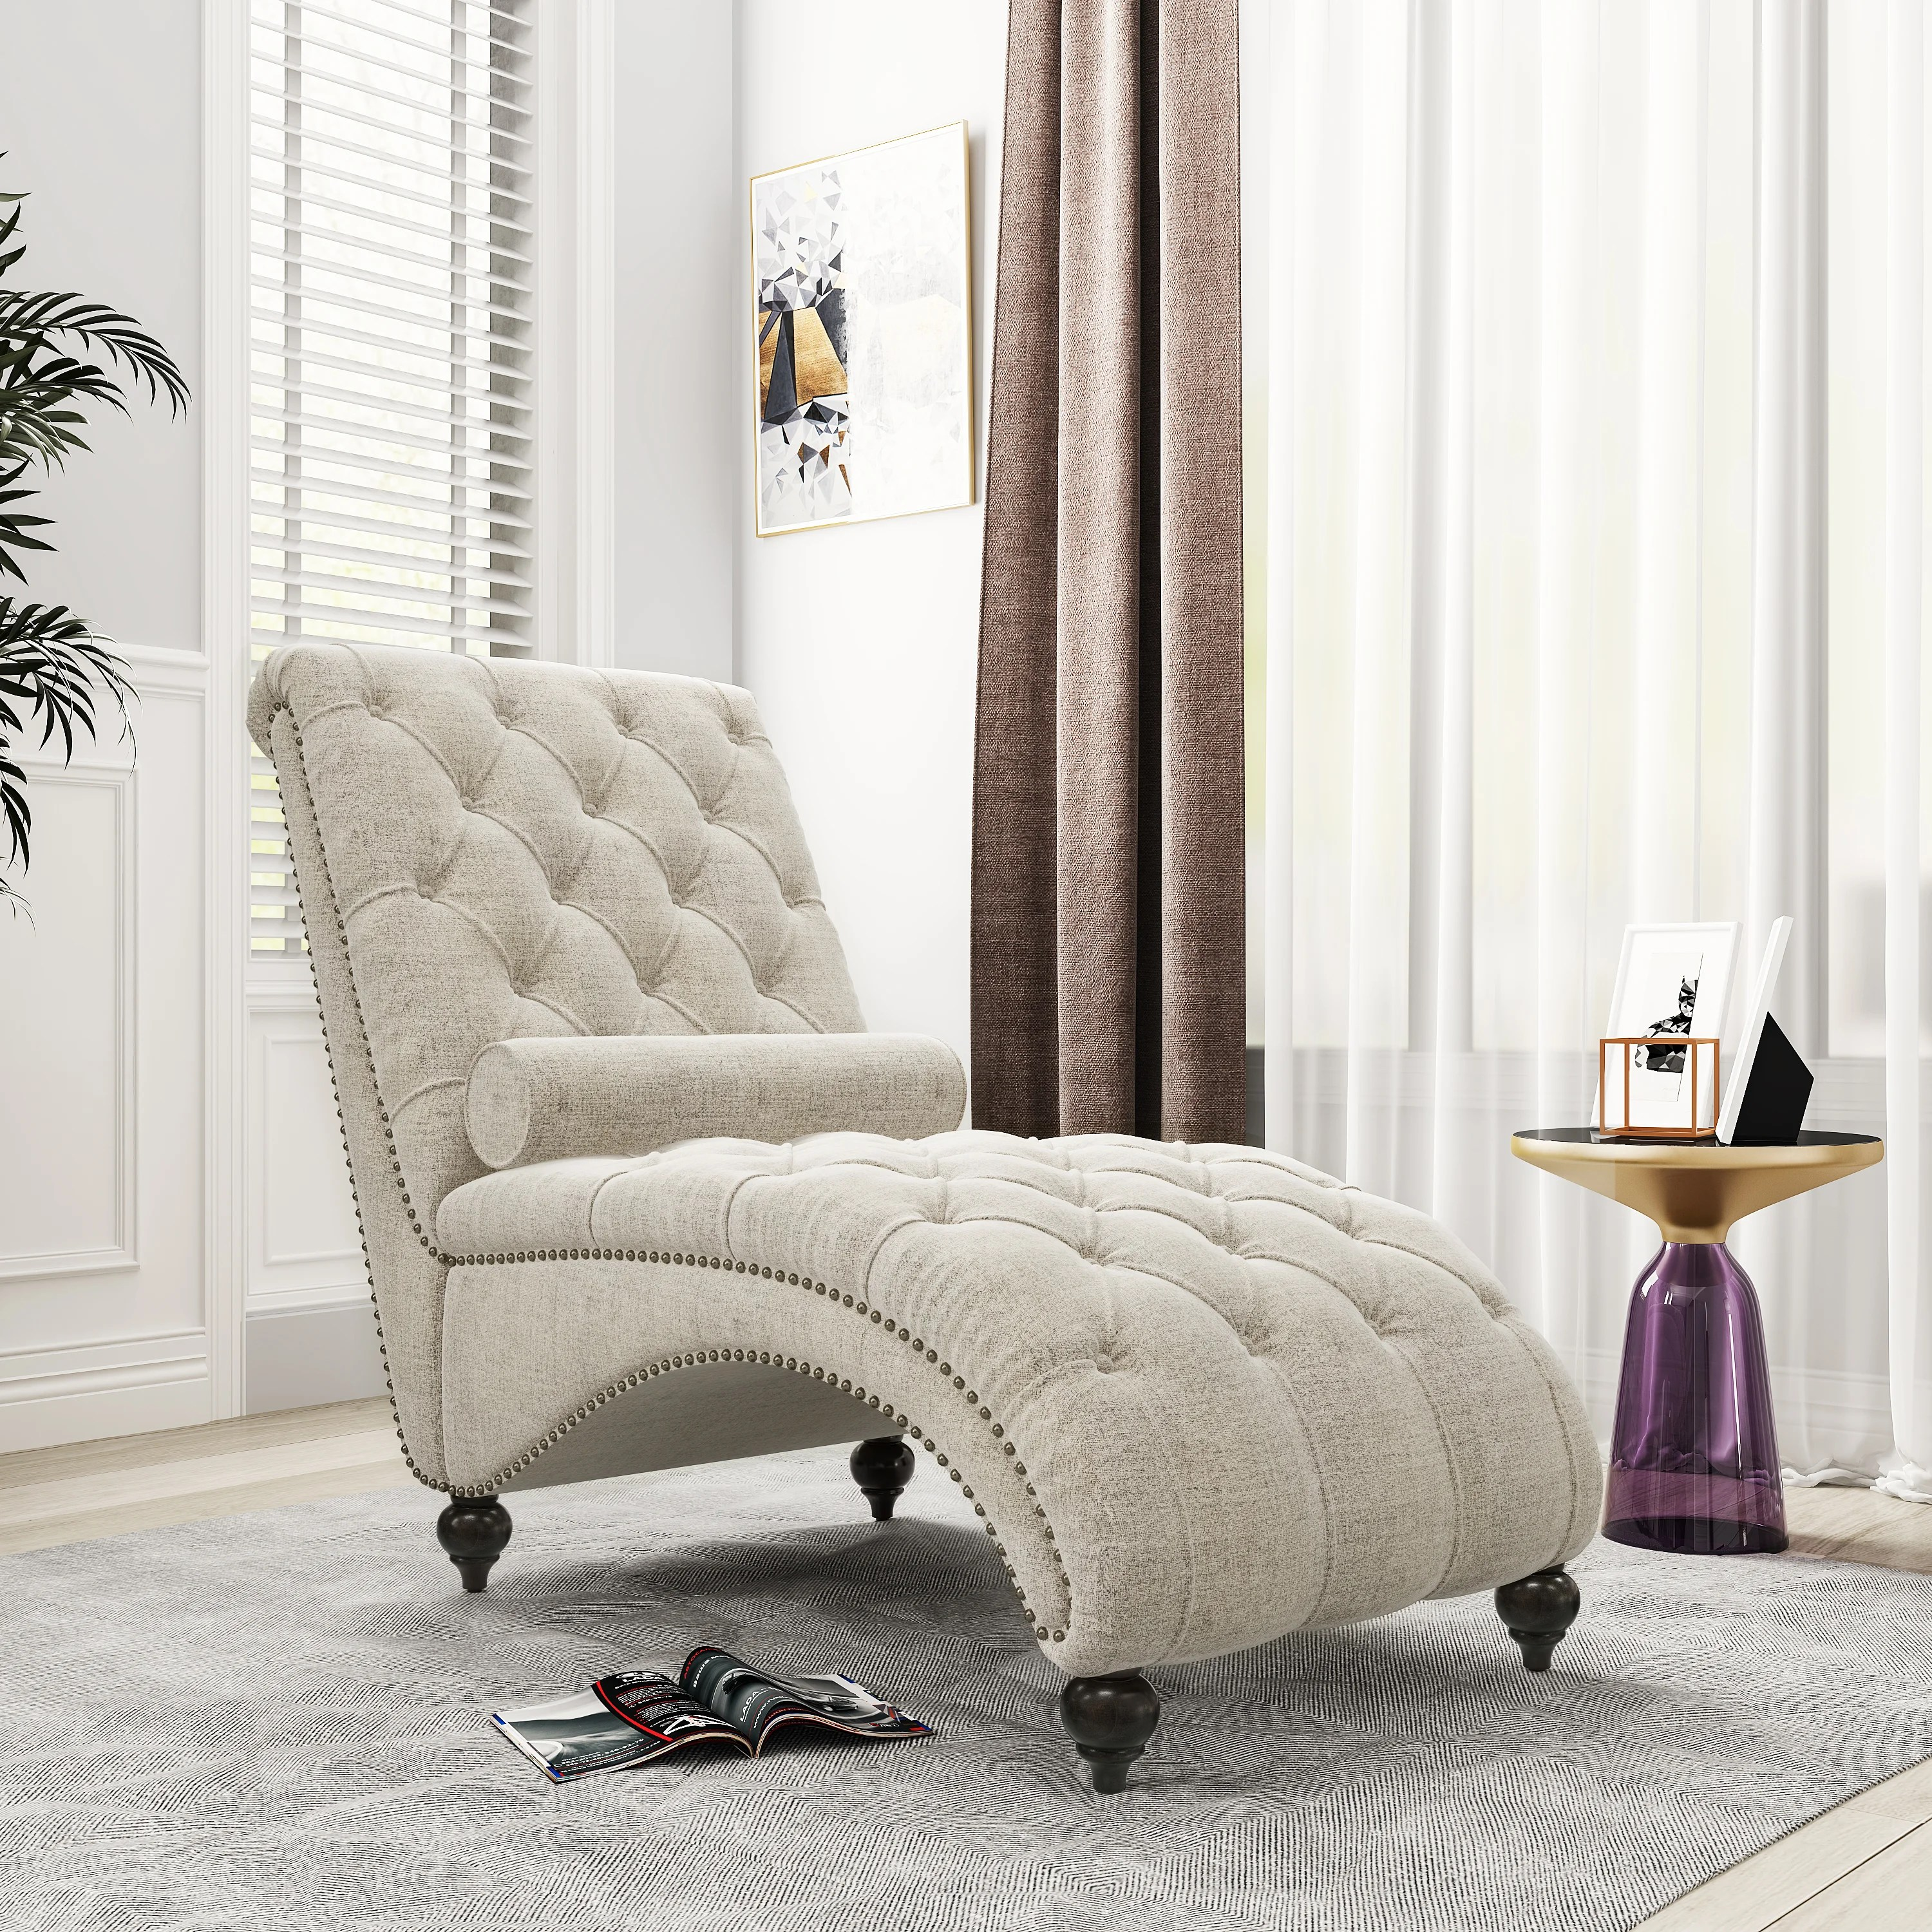 68 linen tufted chaise lounge indoor leisure sofa couch with 1 bolster pillow nailhead trim